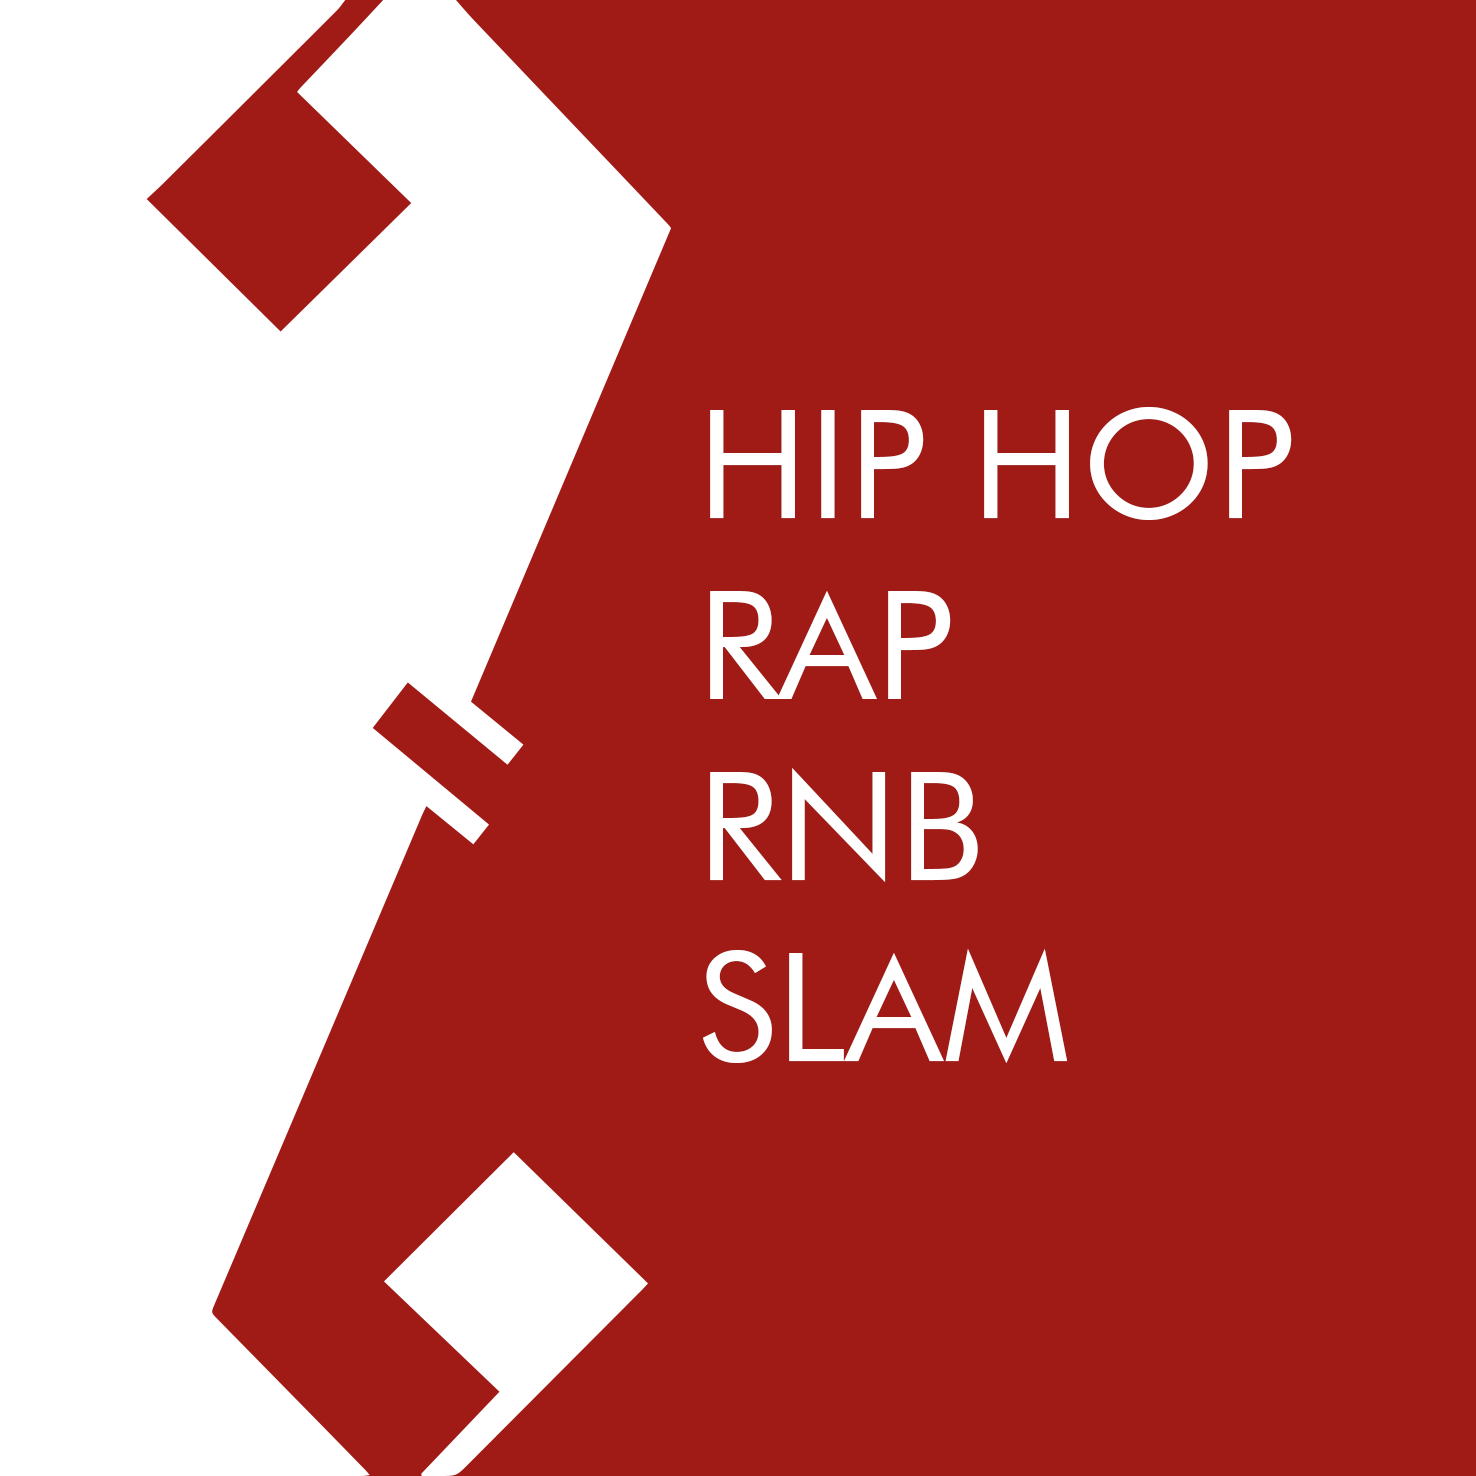 HIP HOP - RAP - RNB - SLAM